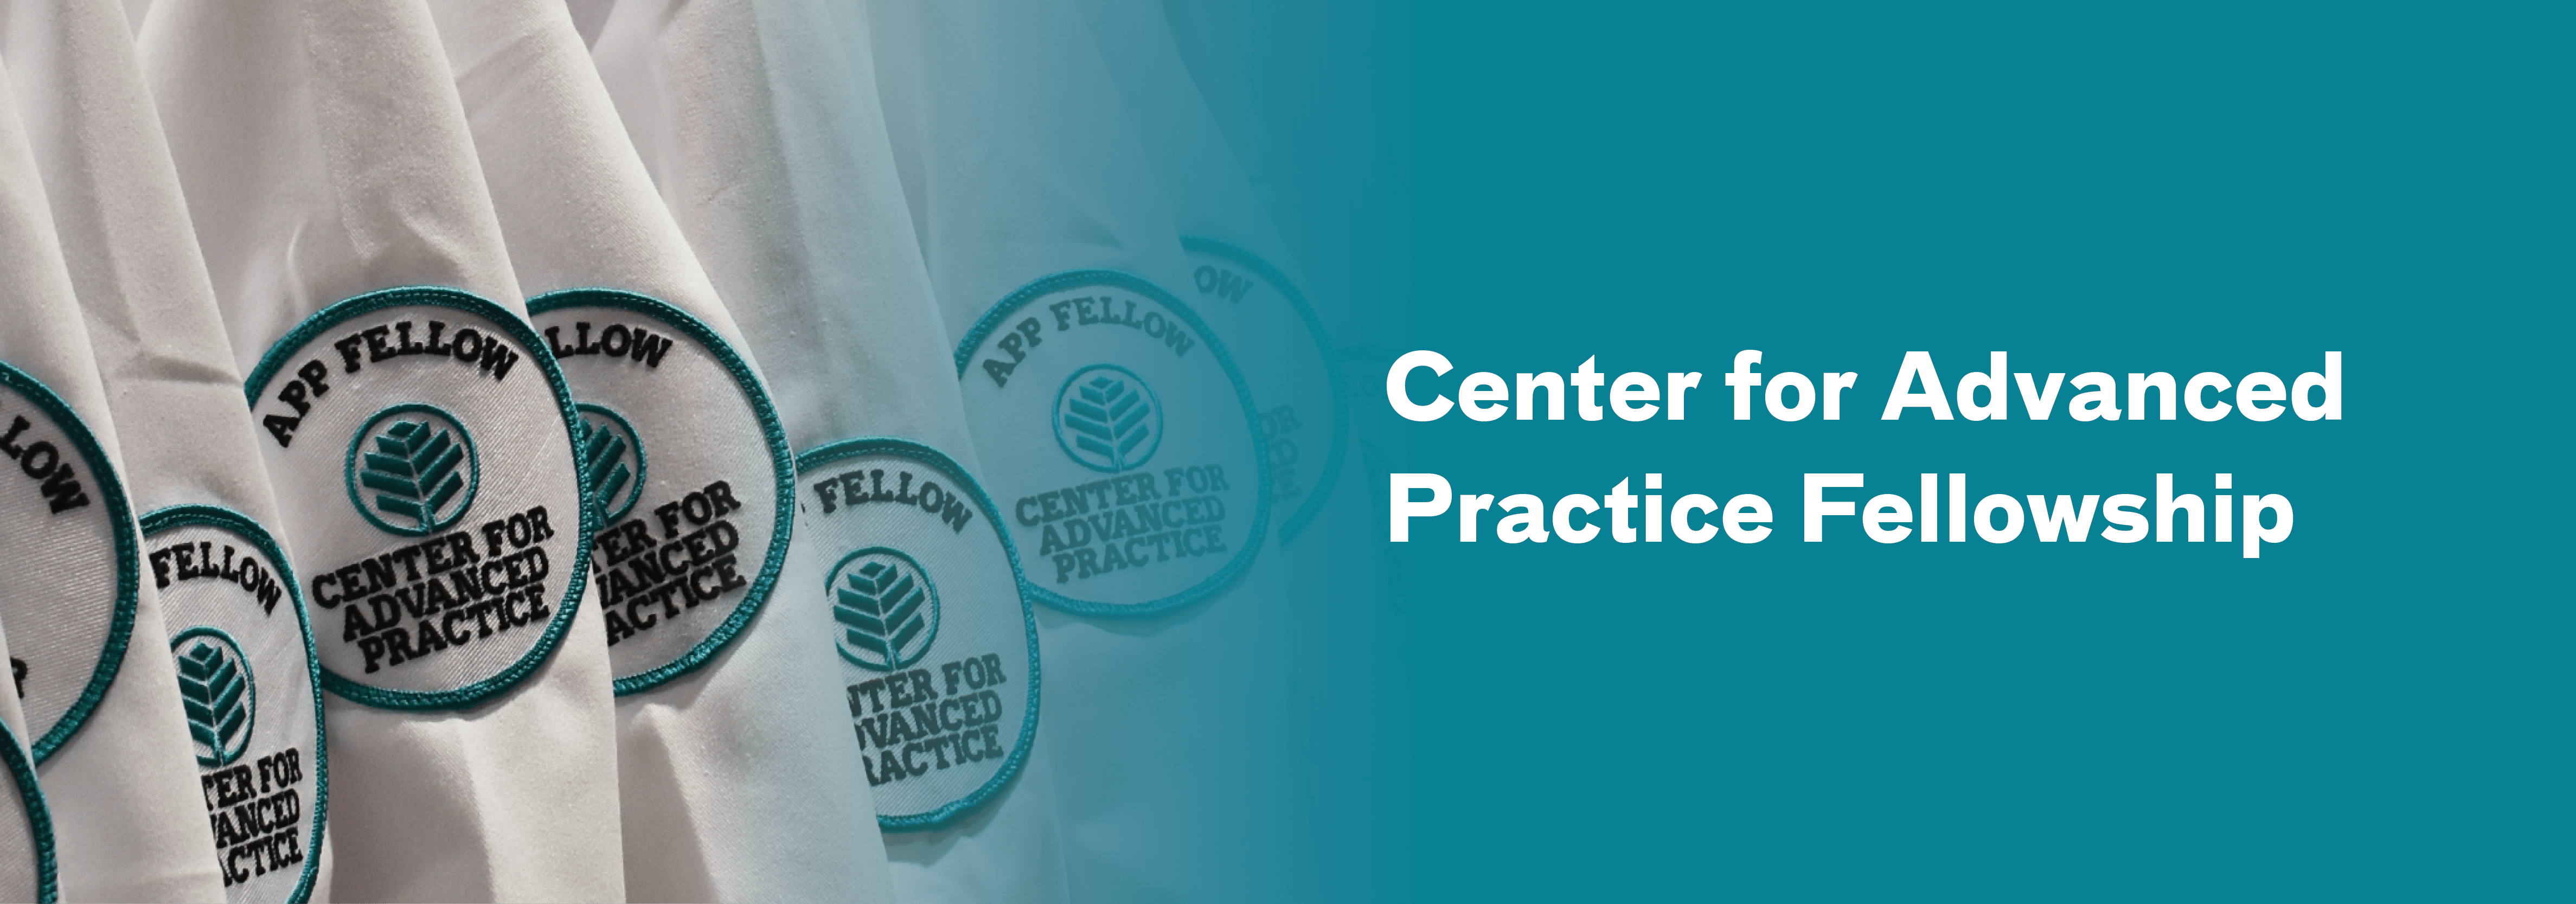 Center for Advanced Practice Fellowship